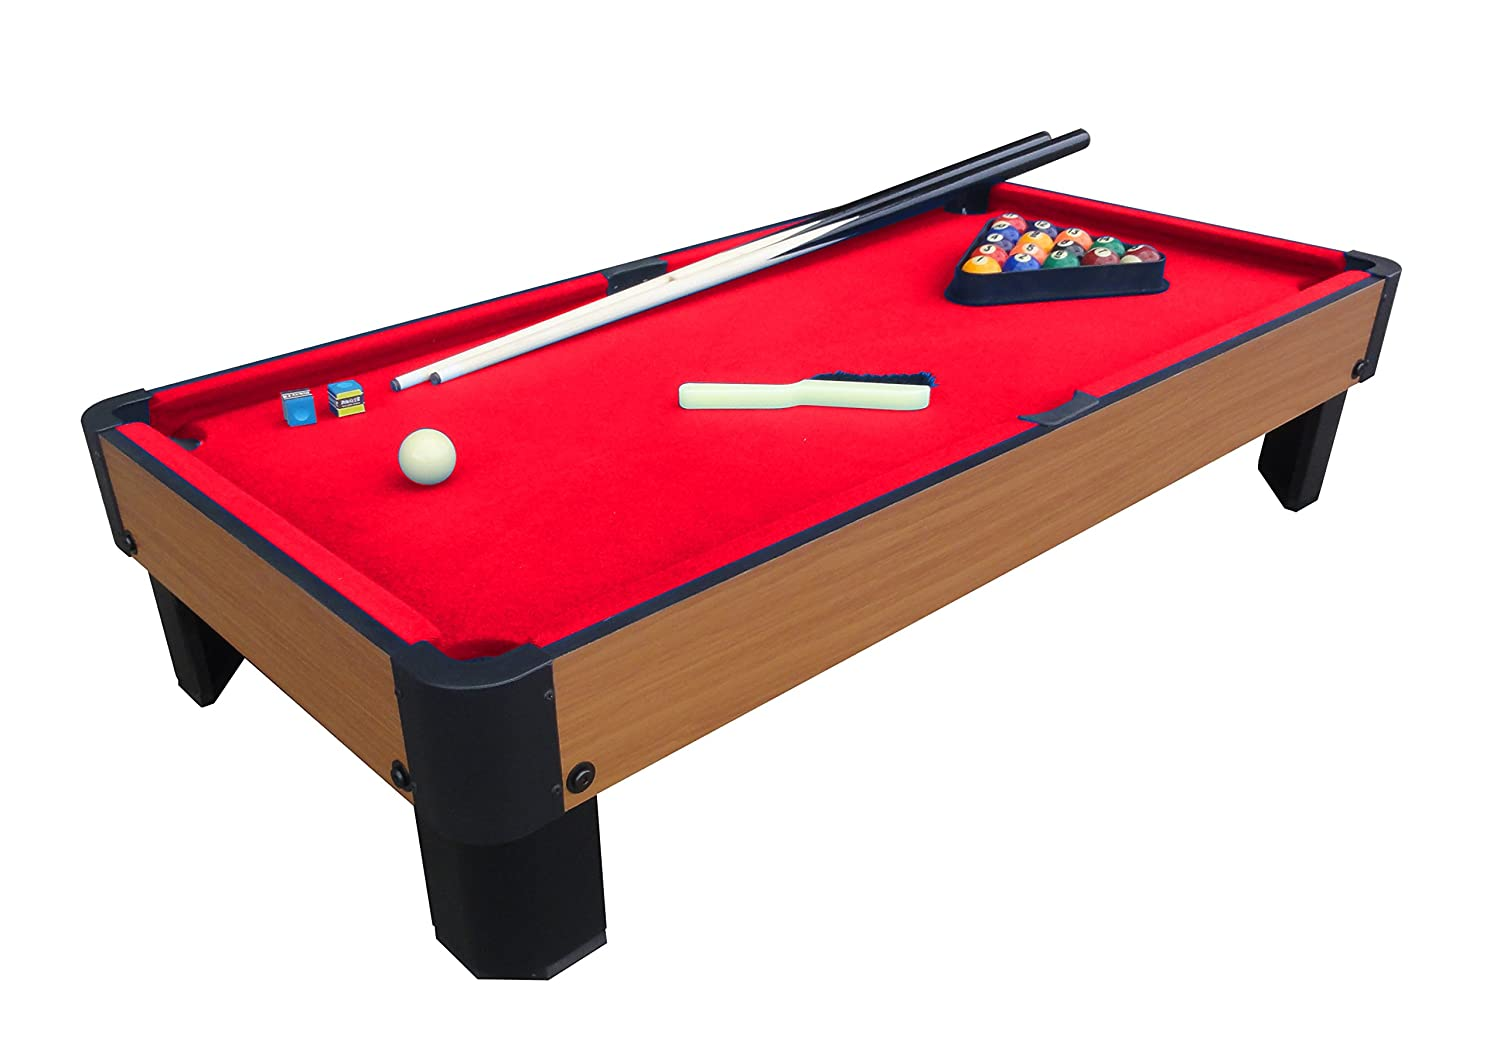 Pool Table with red top and pool ques and pool balls all on the pool table